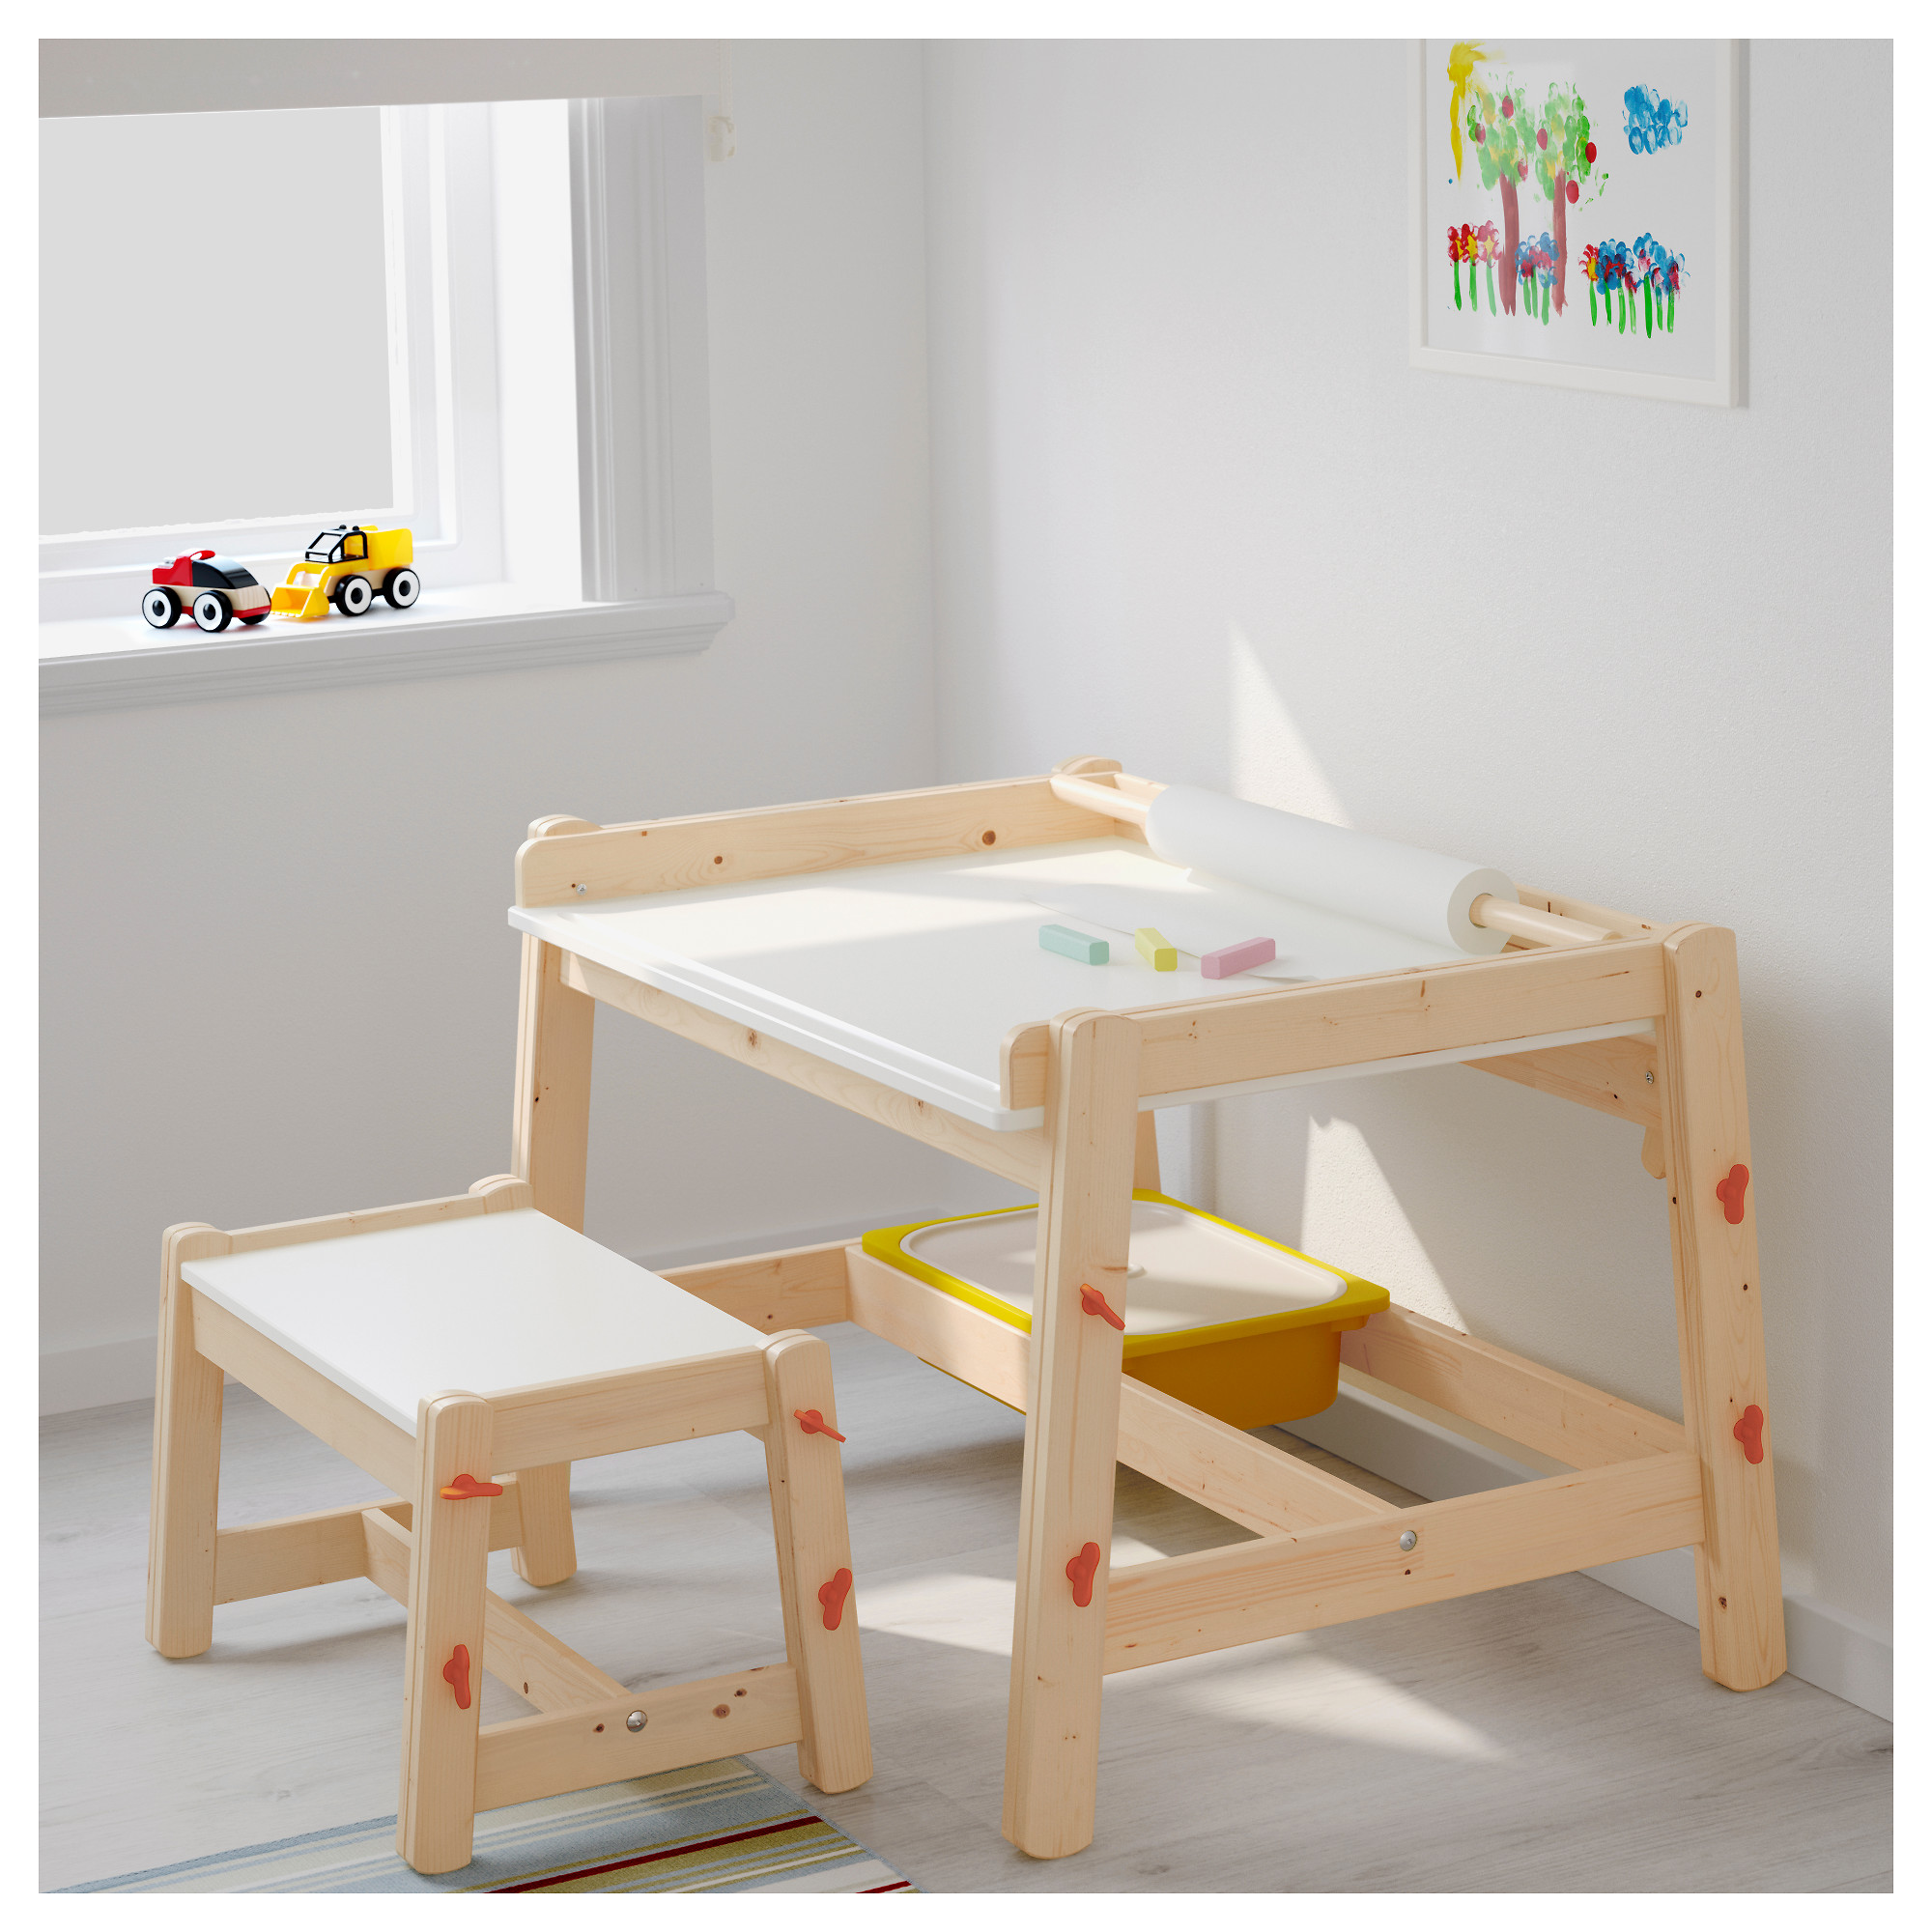 61762ca8686f FLISAT Children s desk - IKEA